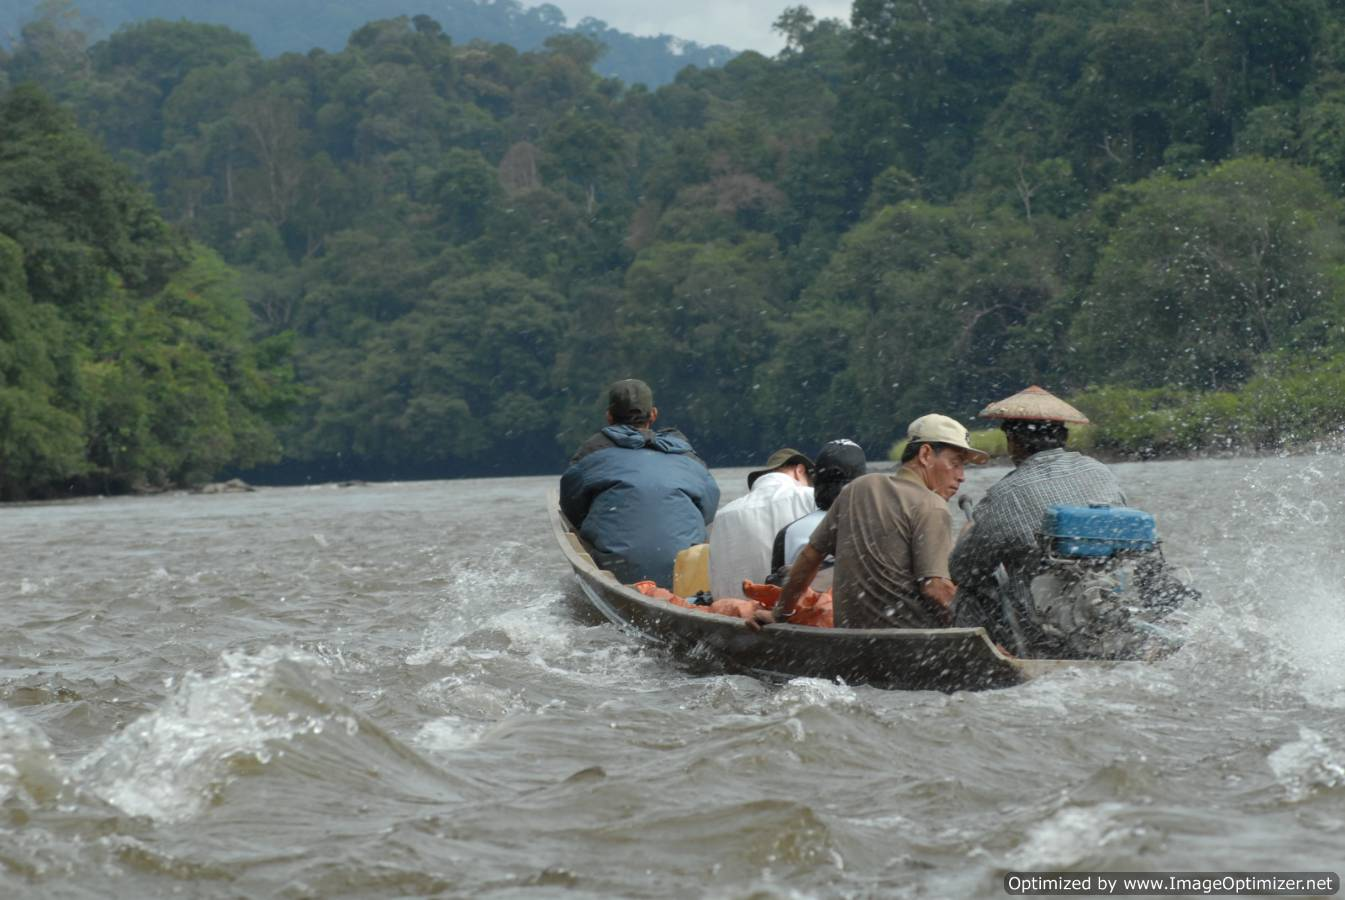 Kalimantan gateway to Tanjung Puting National Park Orang utans wild life safari tours and trekking expedition journeys.dive, duiken, trekking, trekken, Reissen, Reizen.